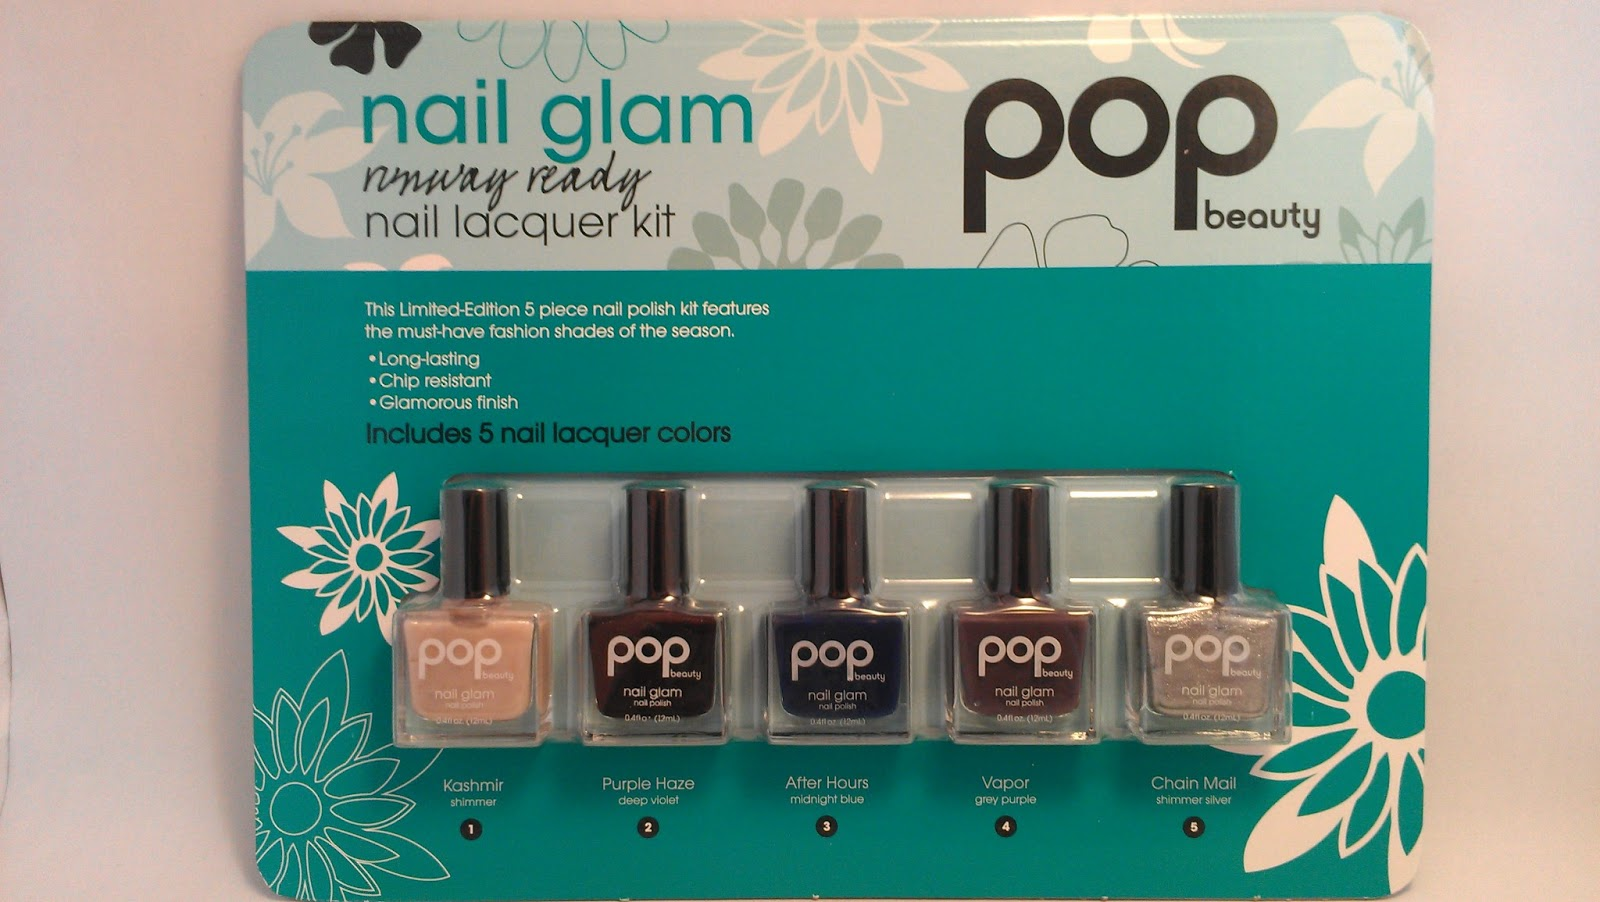 rainysunraynails: Pop Beauty Nail Glam kit from Costco Swatches